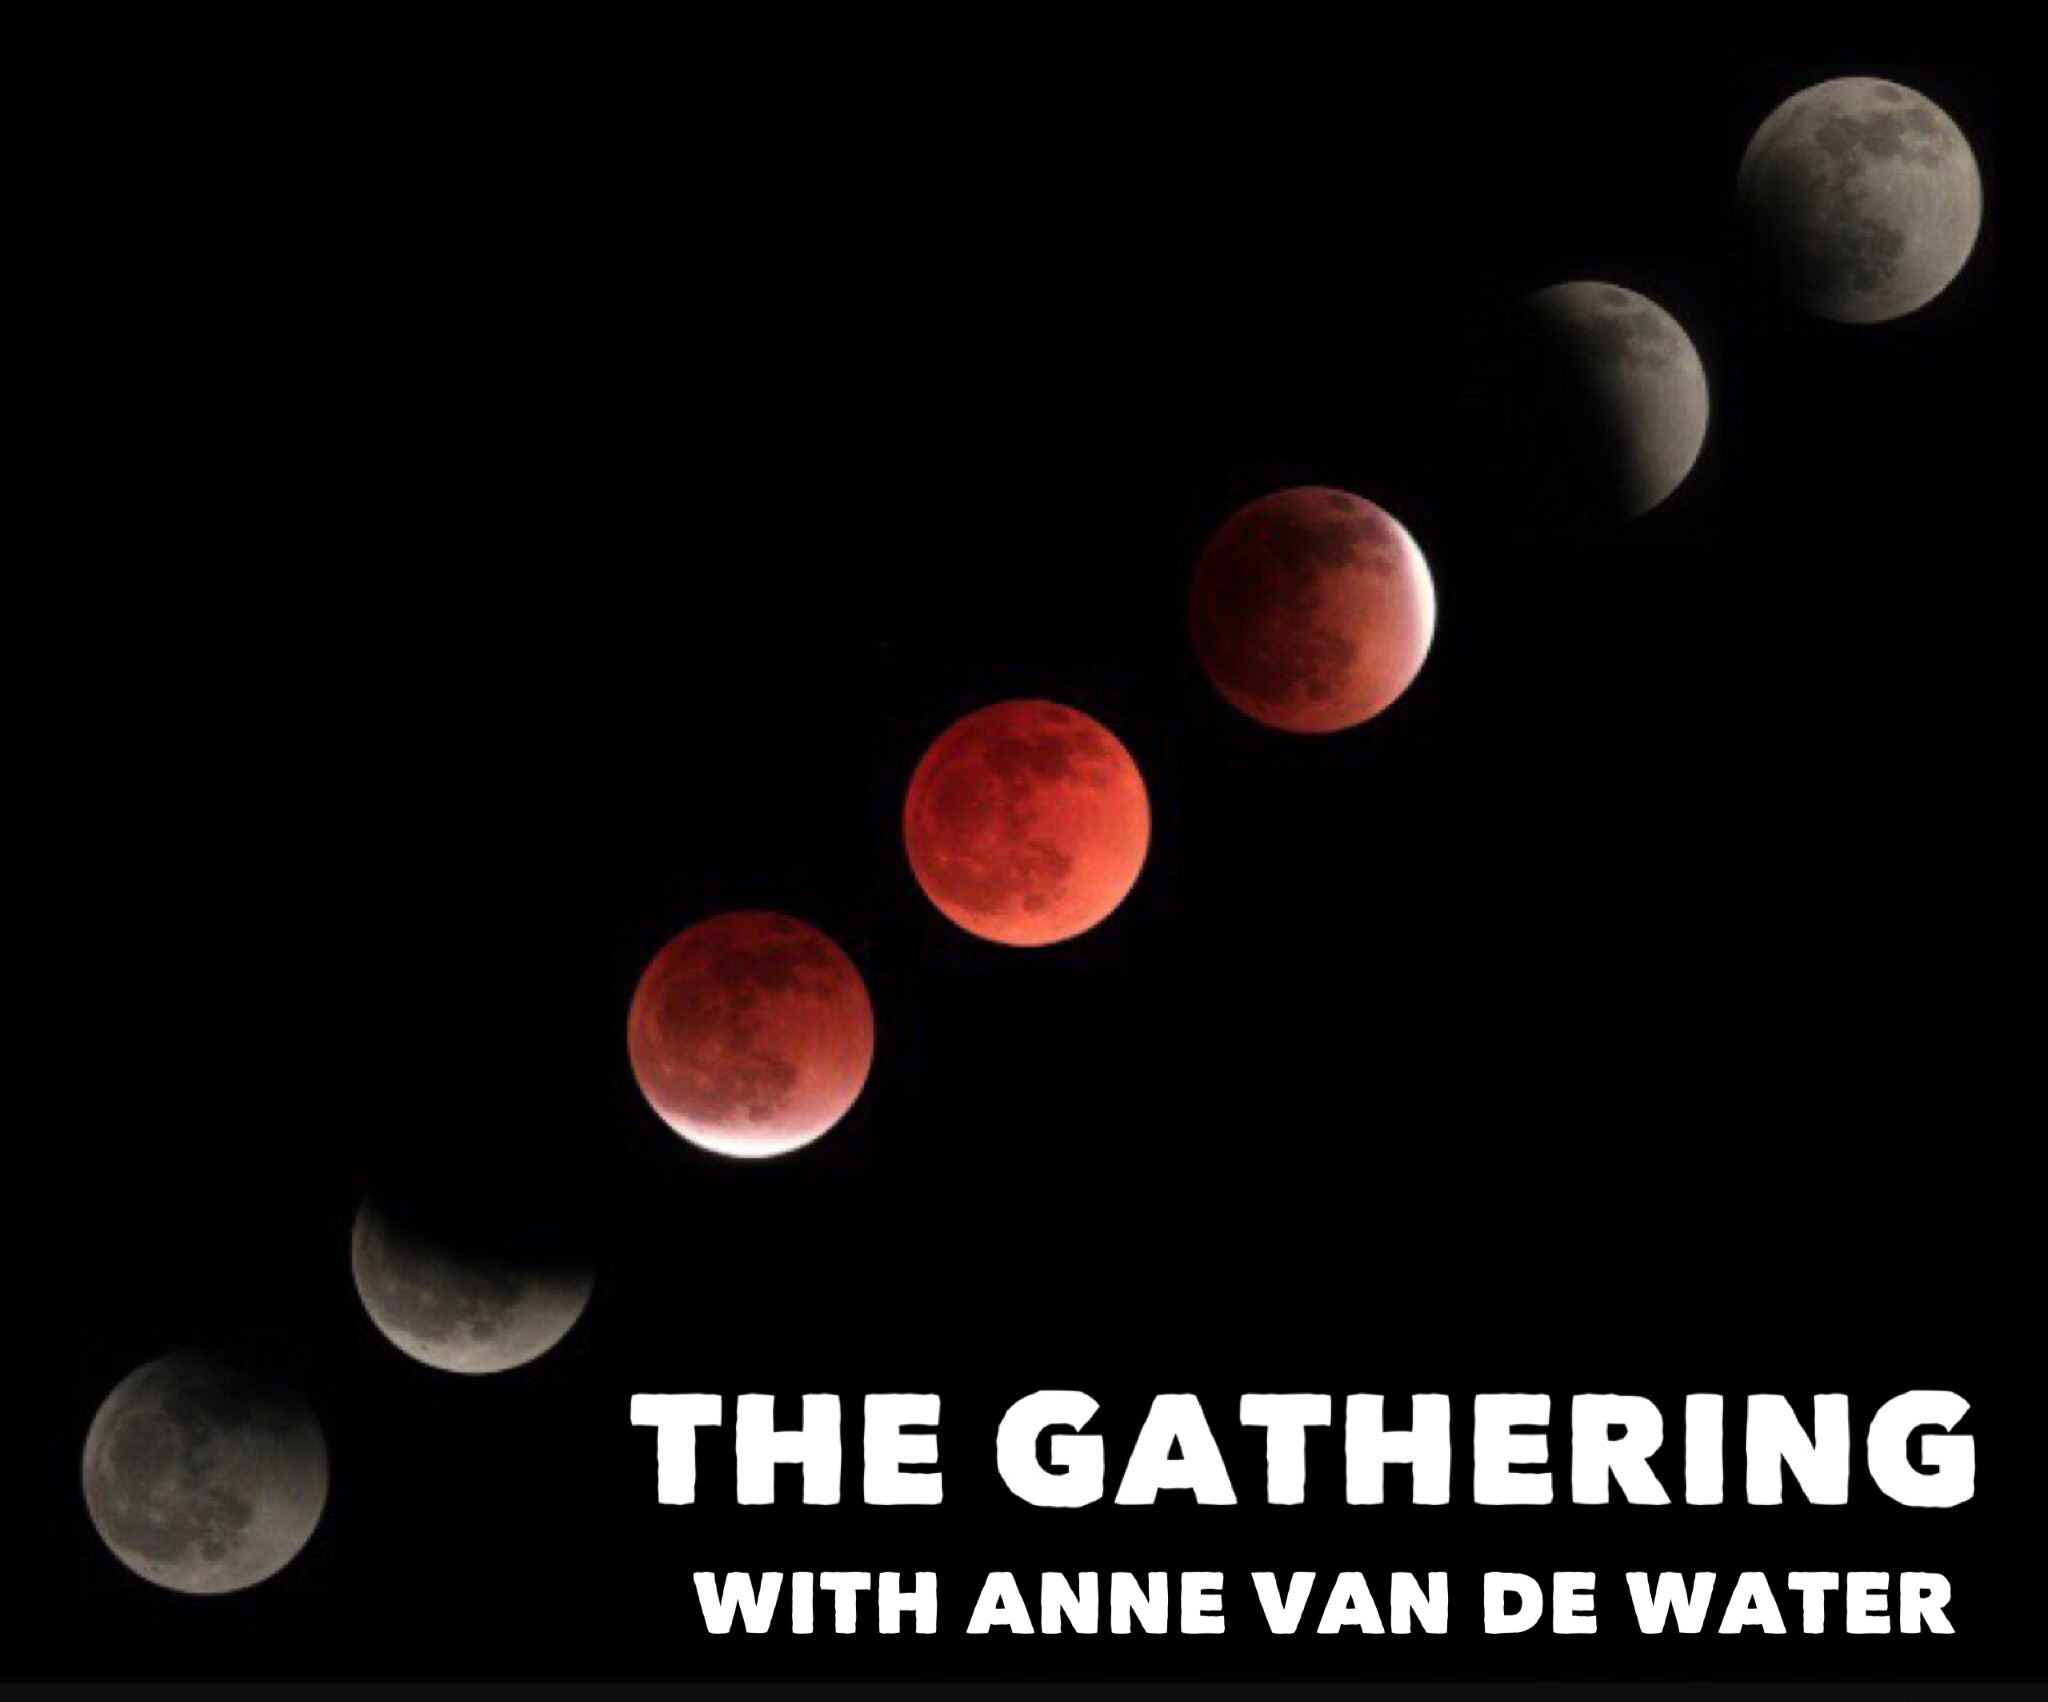 THE GATHERING - To connect with the Full Moon Lunar Eclipse in Aquarius